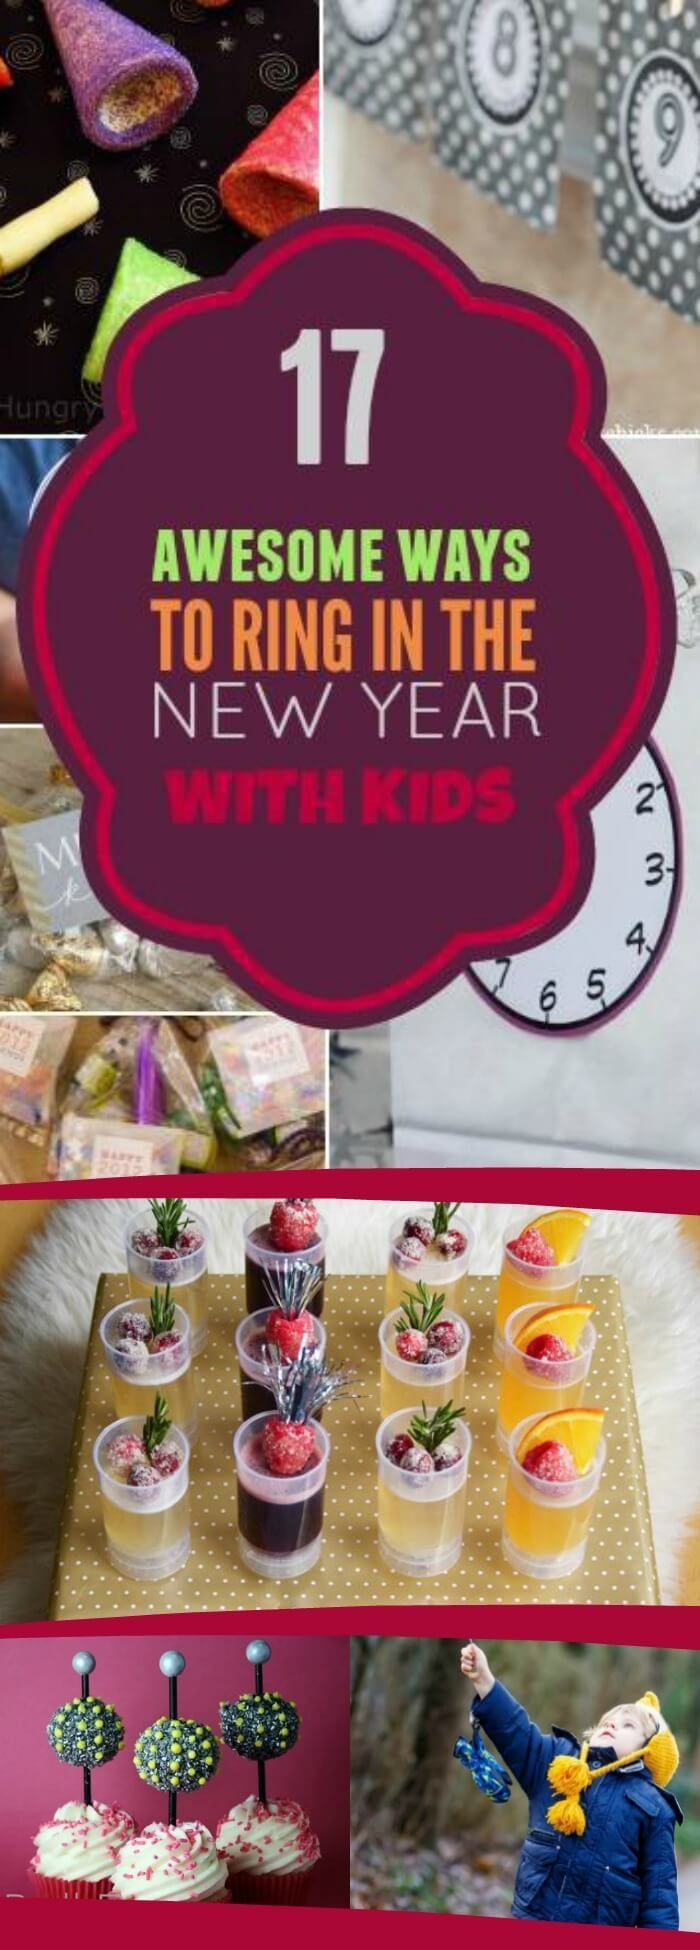 17 Awesome Ways to Ring in the New Year with Kids, Pin Today For Later!